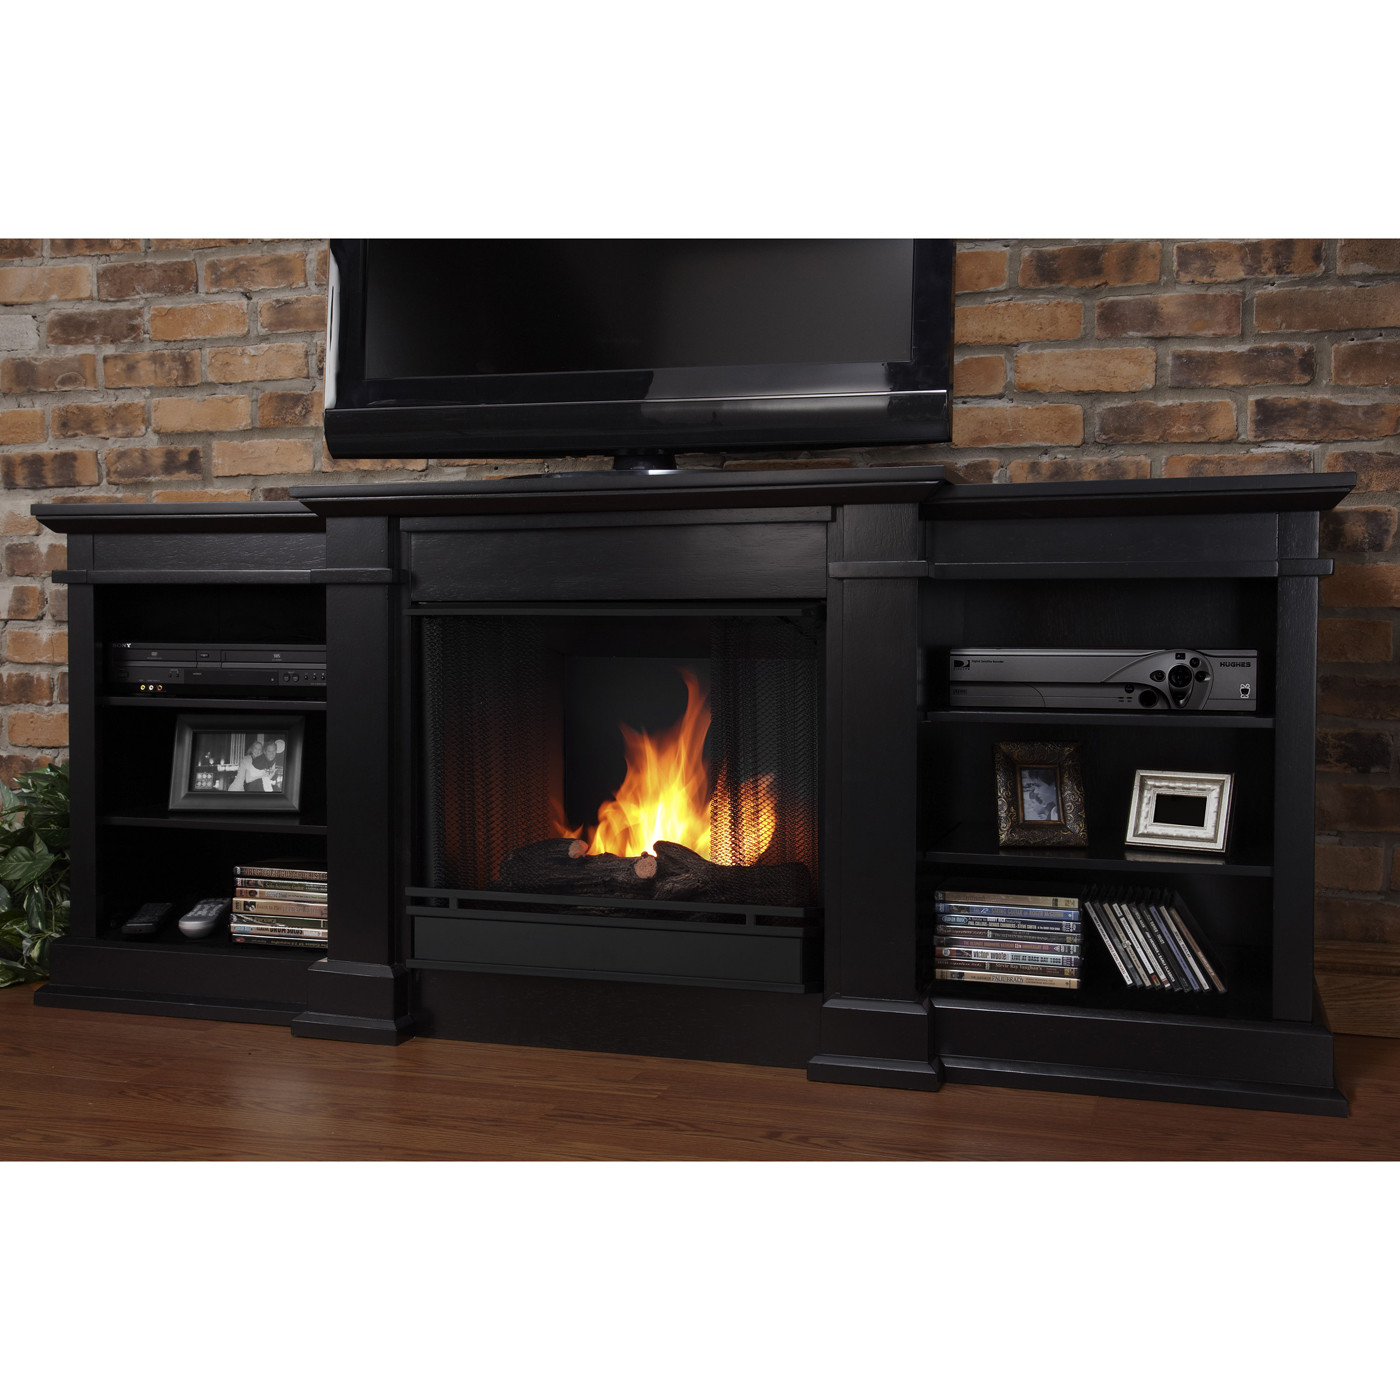 Best ideas about Real Flame Fireplace . Save or Pin Real Flame G1200 Fresno Indoor Gel Fireplace Now.